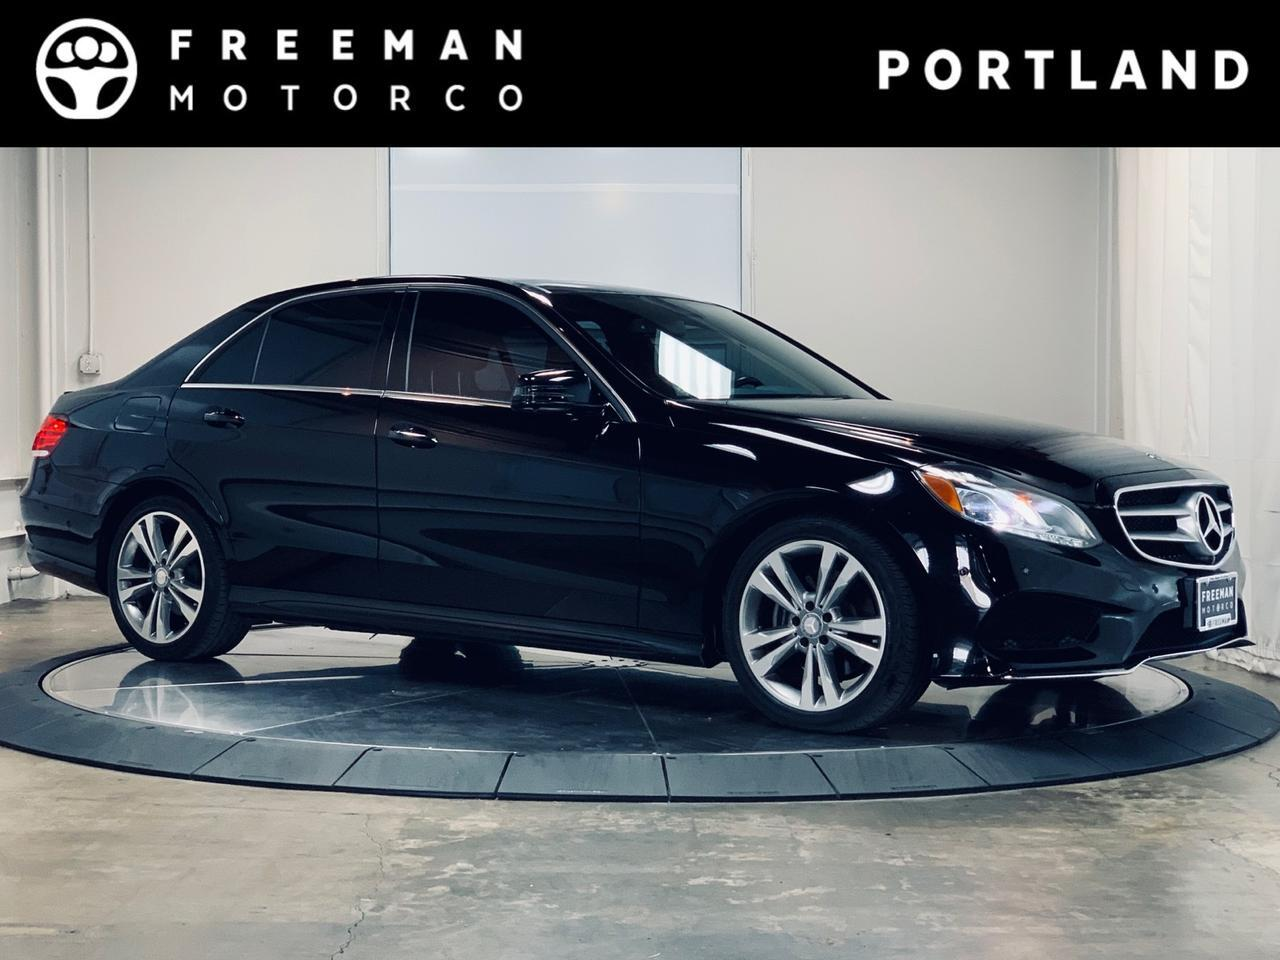 2015 Mercedes-Benz E 350 Sport Pano Blind Spot Assist Active Park Assist 31k Miles Portland OR